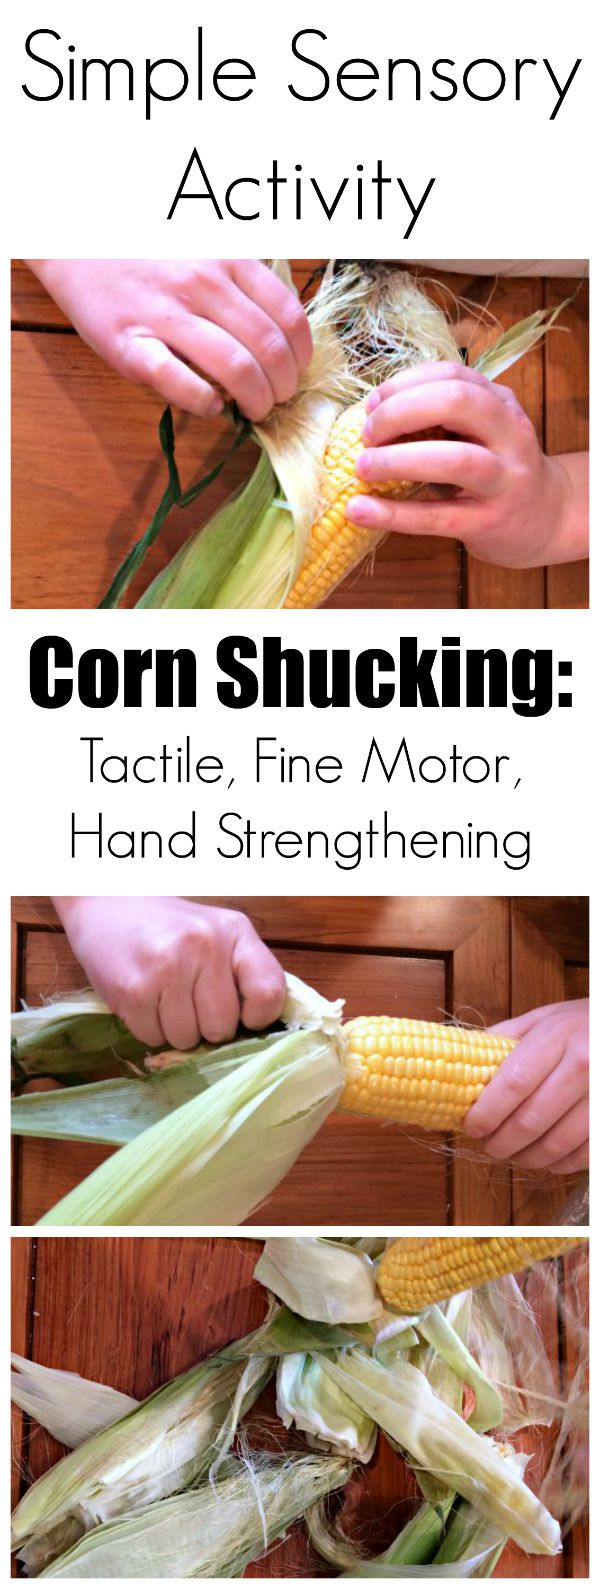 Corn Sensory Activity. Corn shucking is deceptively simple, but offers tactile, fine motor and hand strengthening outlets.